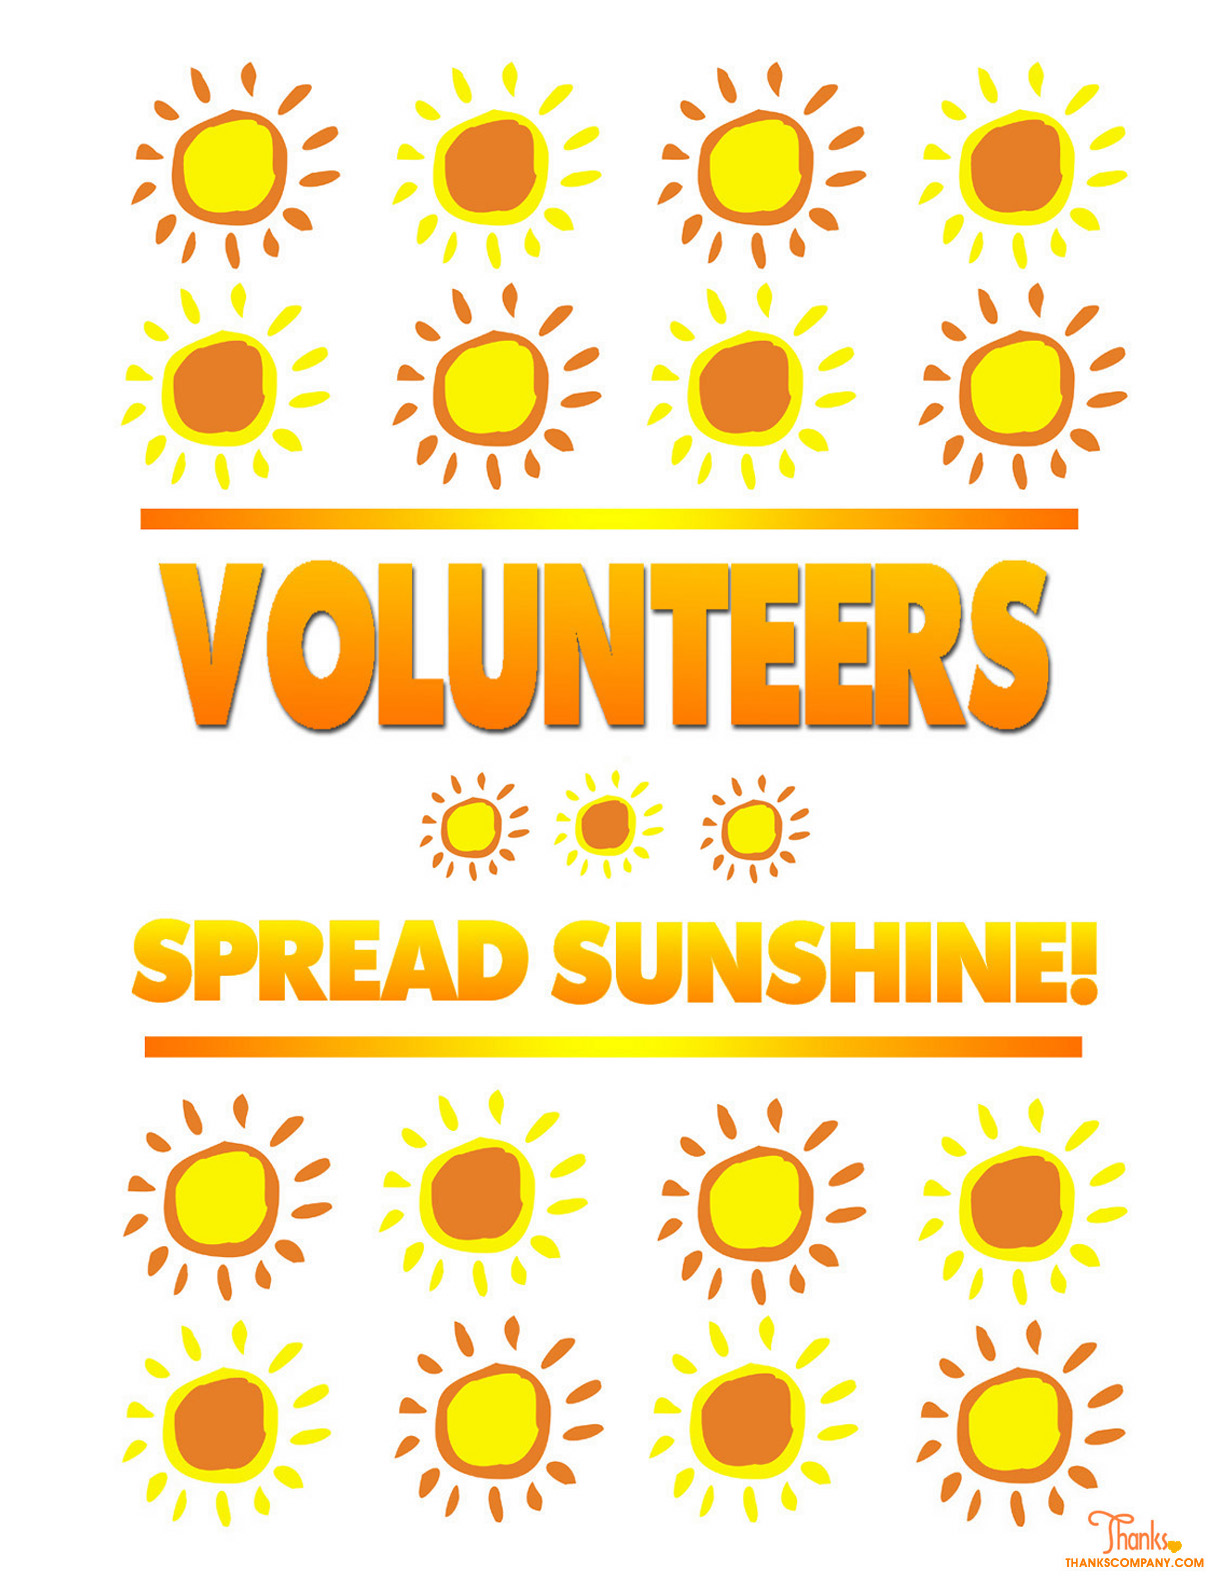 volunteer sunshine volunteers quotes thank appreciation thanks posters cards gifts poster volunteering greeting poem gift fundraising spread company poems camp